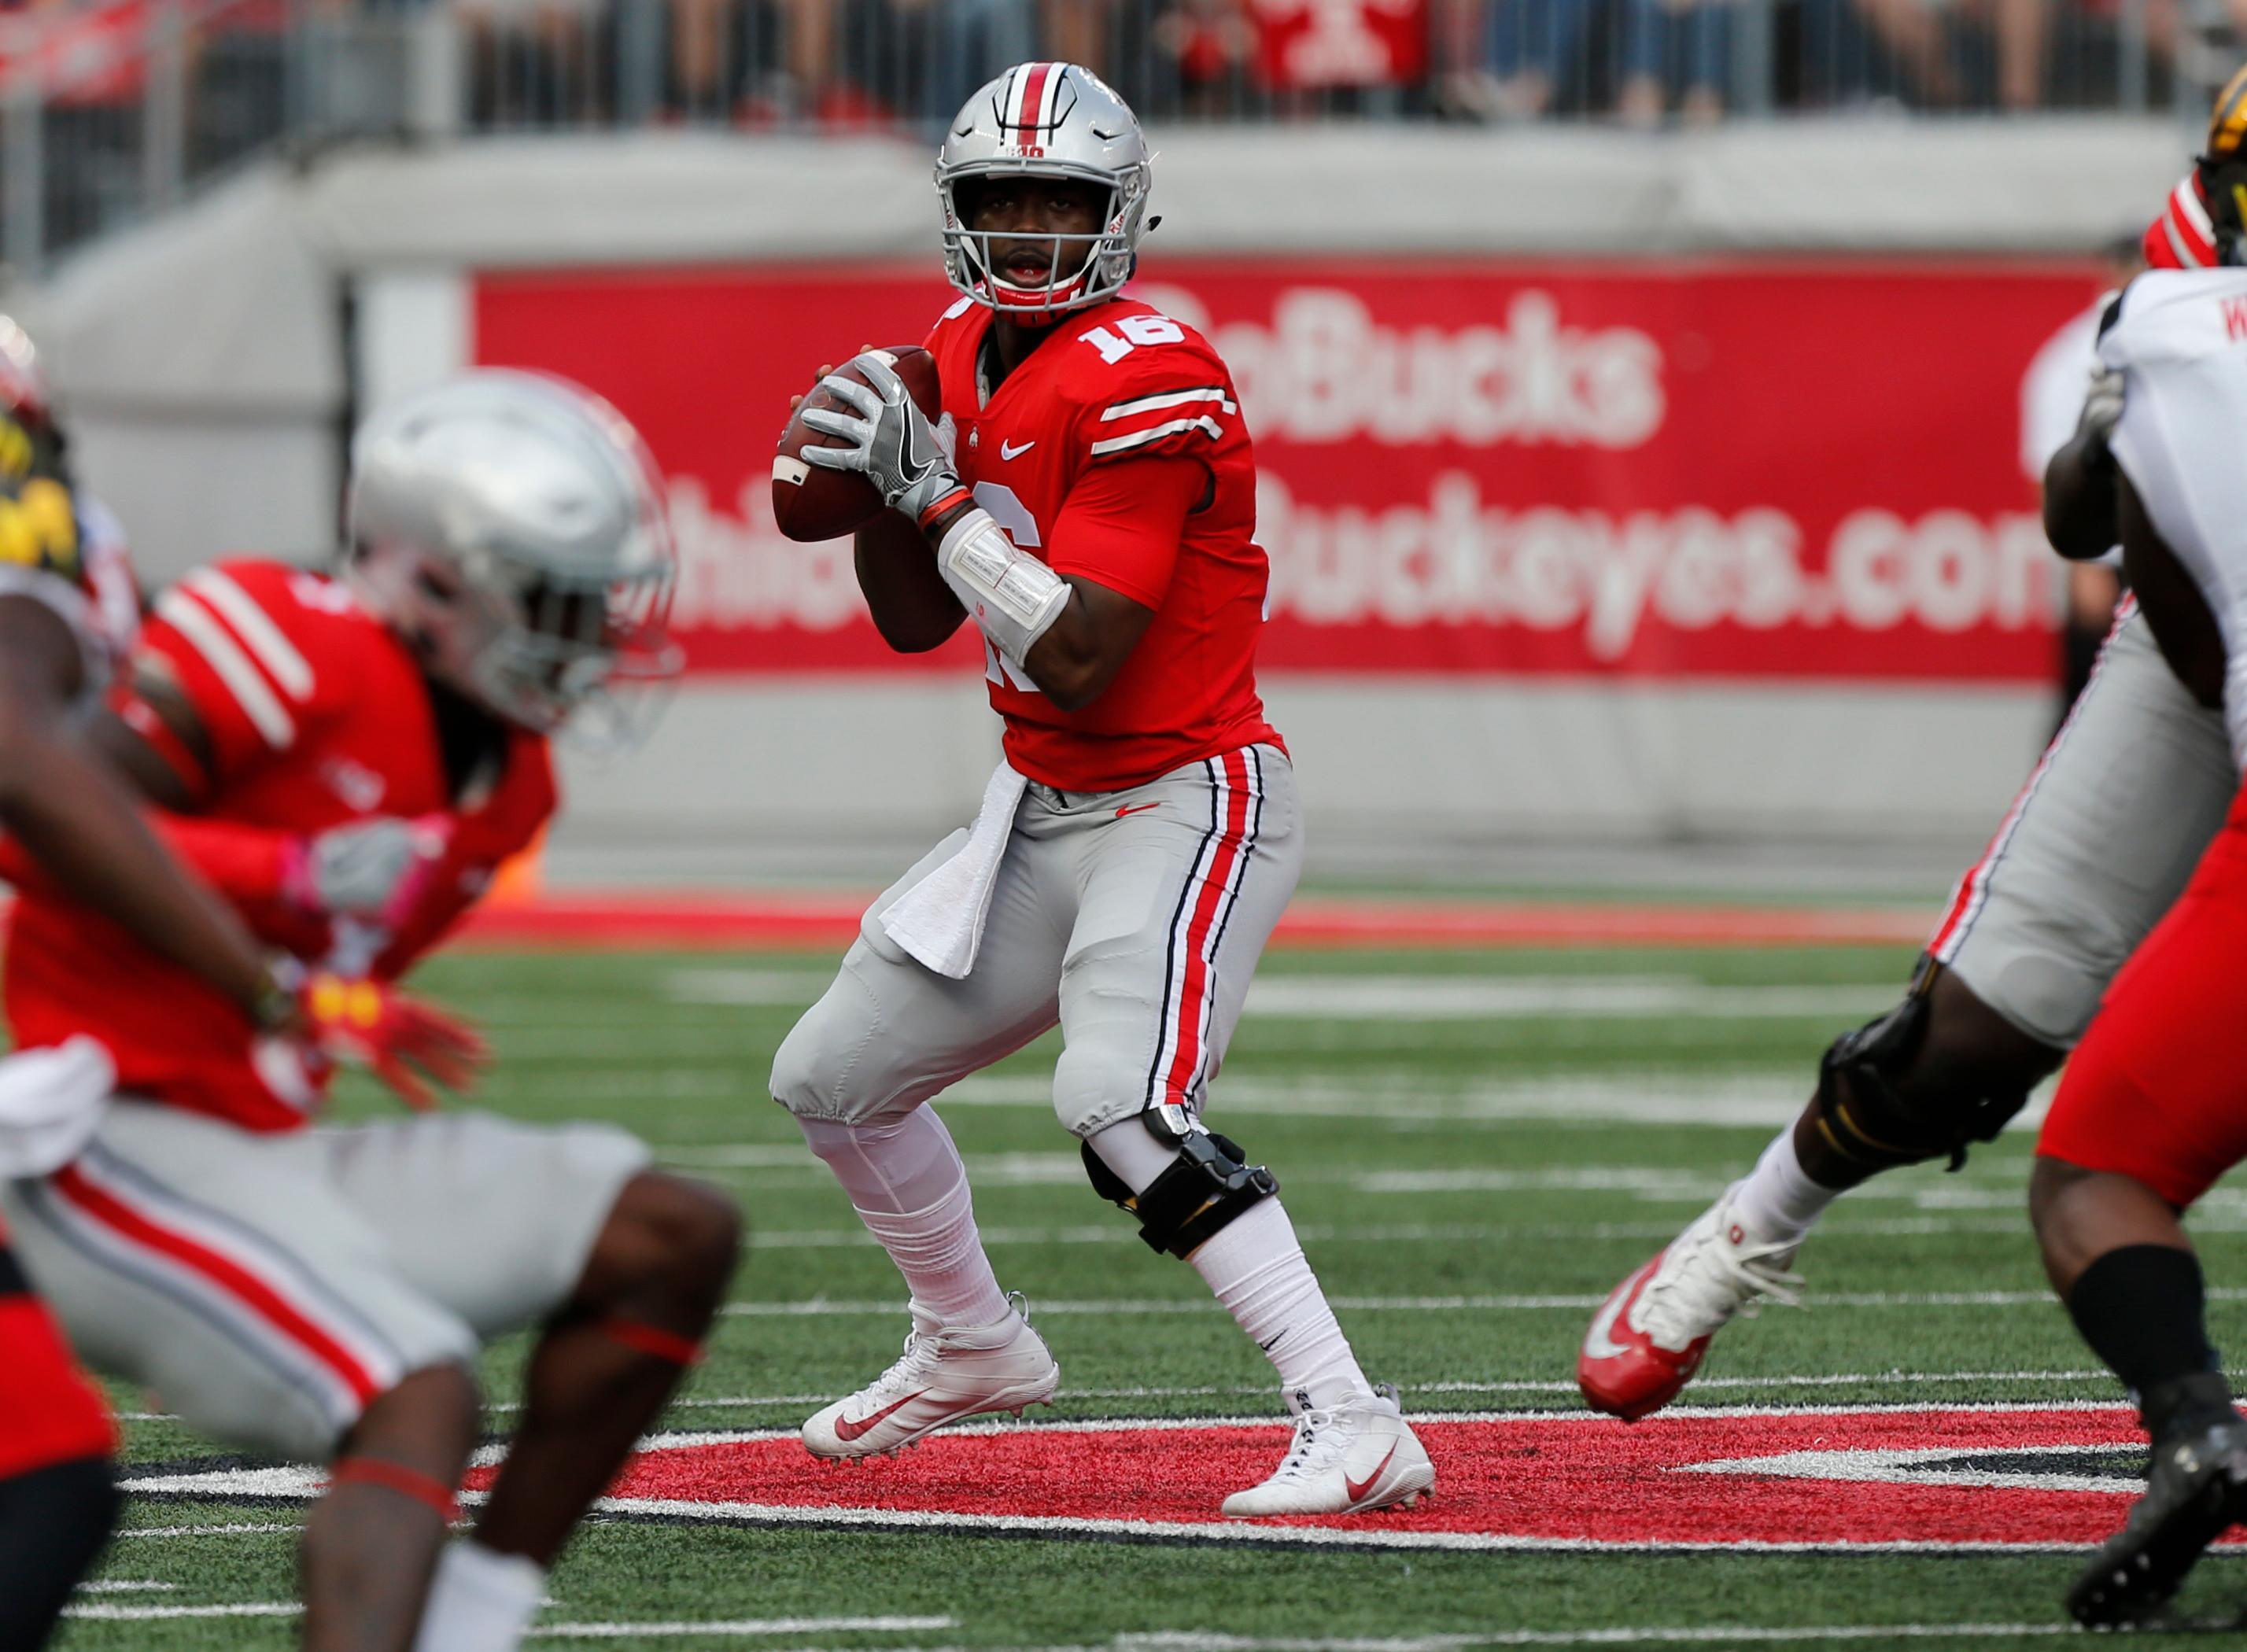 Ohio State quarterback J.T. Barrett drops back to pass against Maryland during the first half of an NCAA college football game Saturday, Oct. 7, 2017, in Columbus, Ohio. (AP Photo/Jay LaPrete)